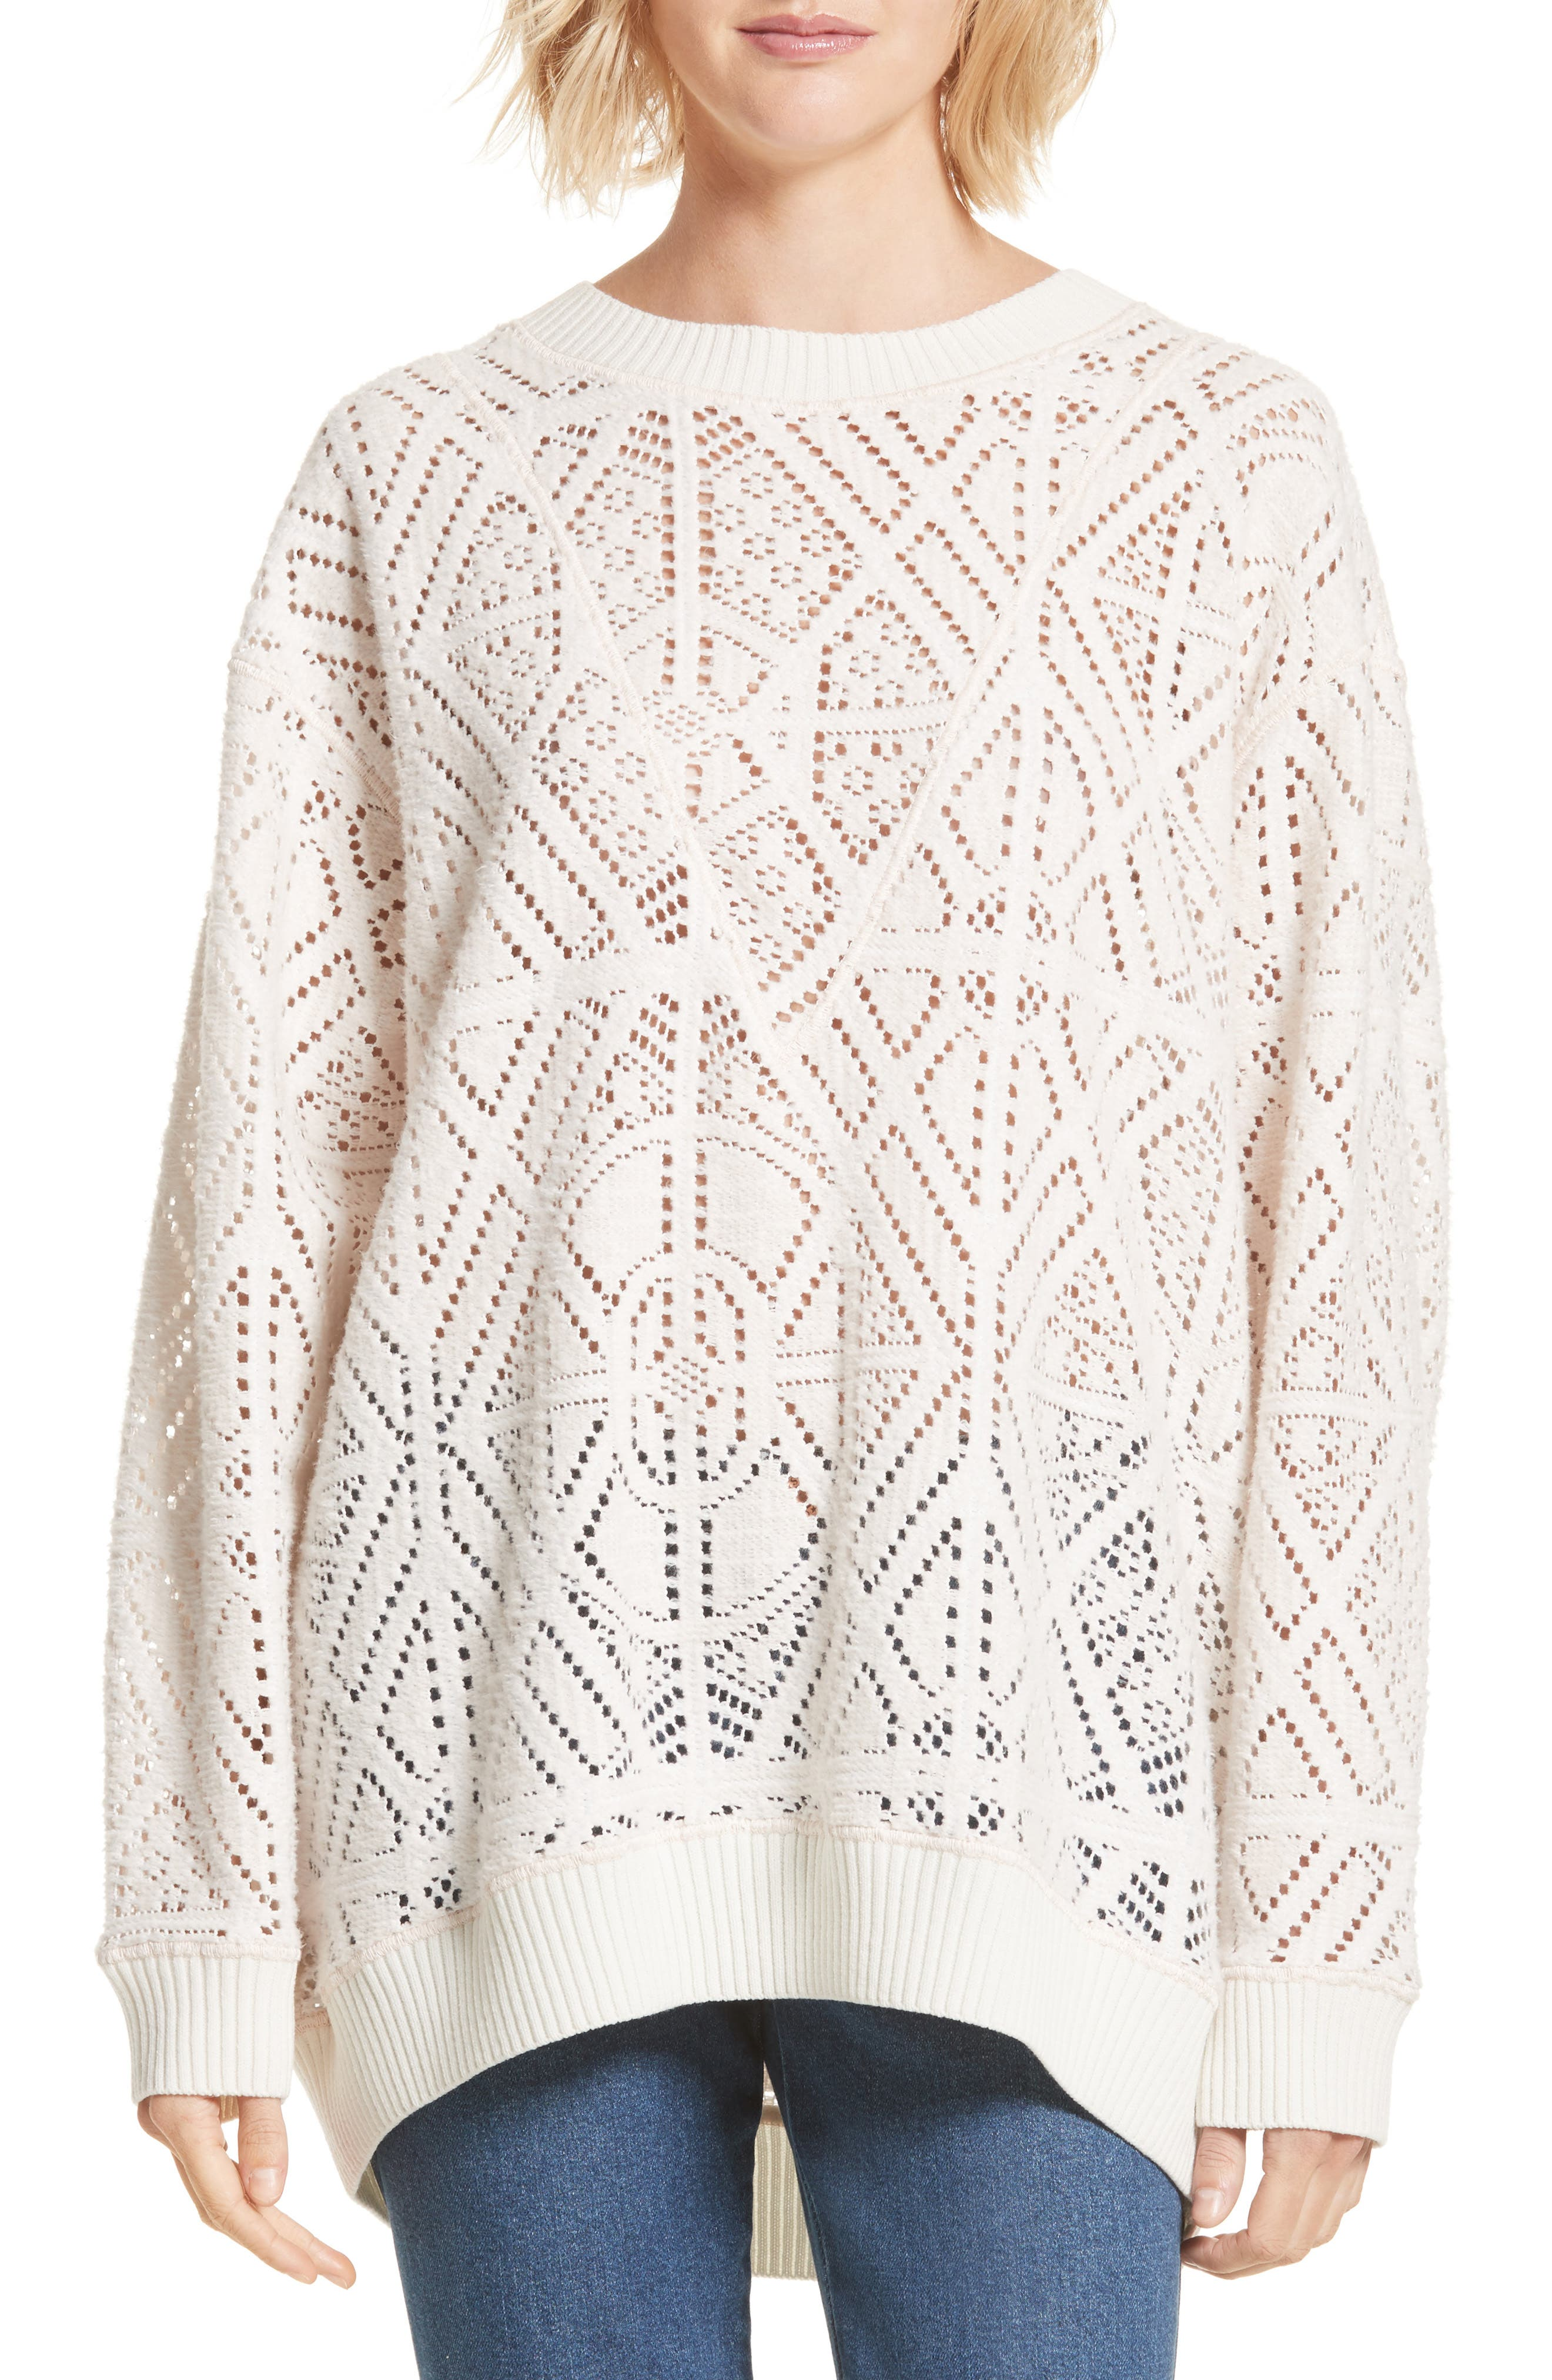 Main Image - See by Chloé Lace Knit Sweater